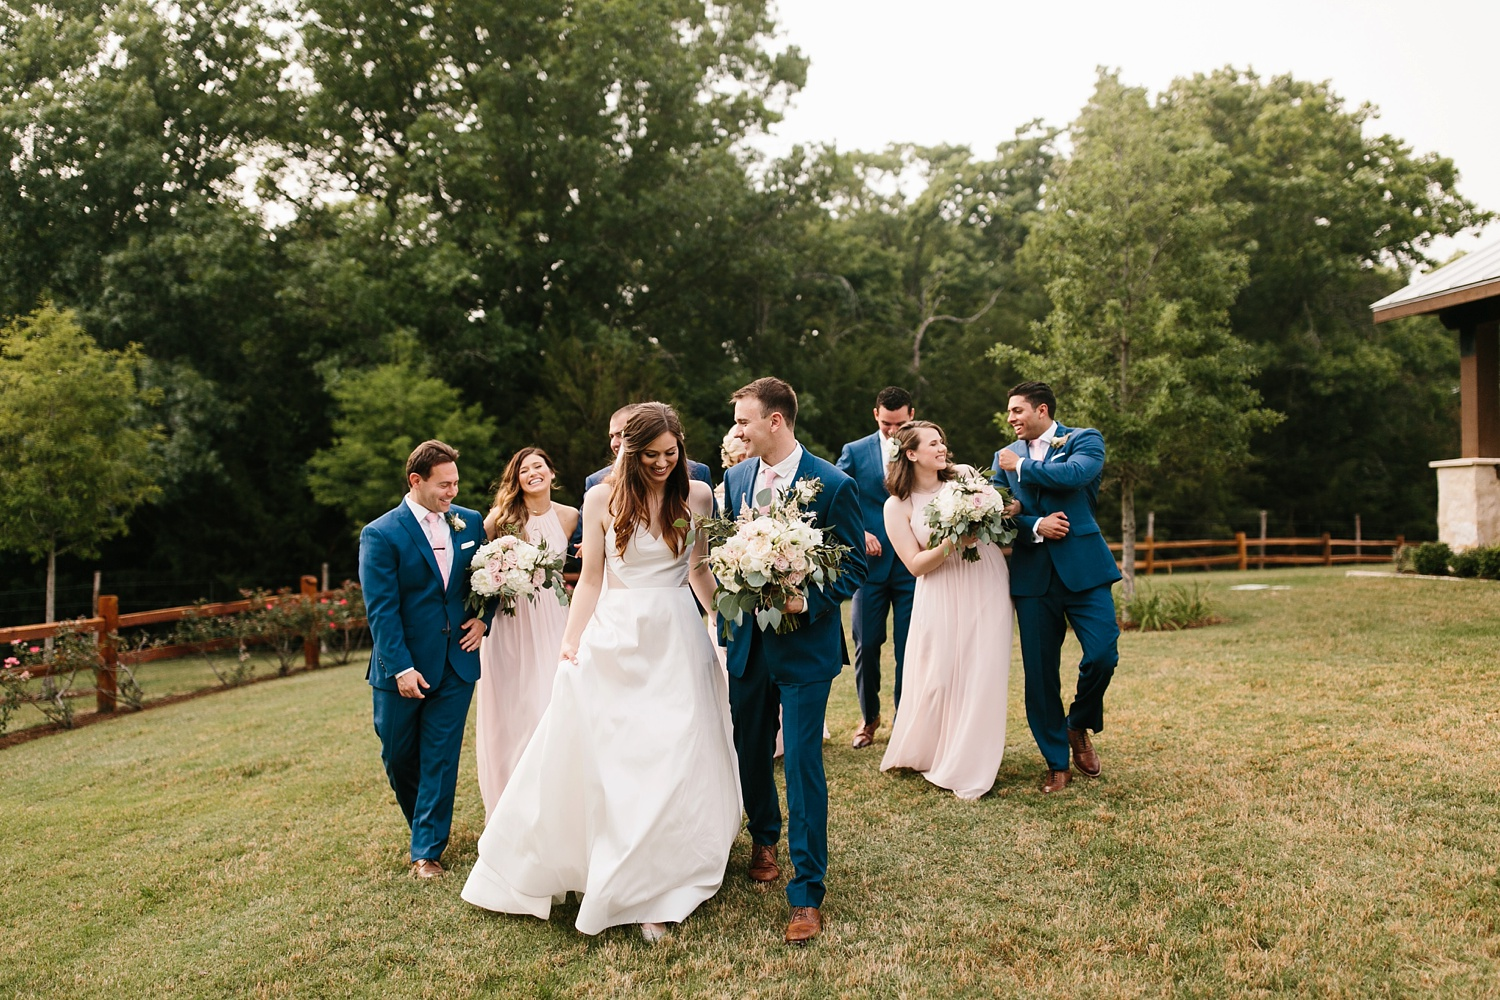 Aleta + Sabian a blush pink and navy blue wedding at The Springs in Anna, TX by North Texas Wedding Photographer _ Rachel Meagan Photography _ 073